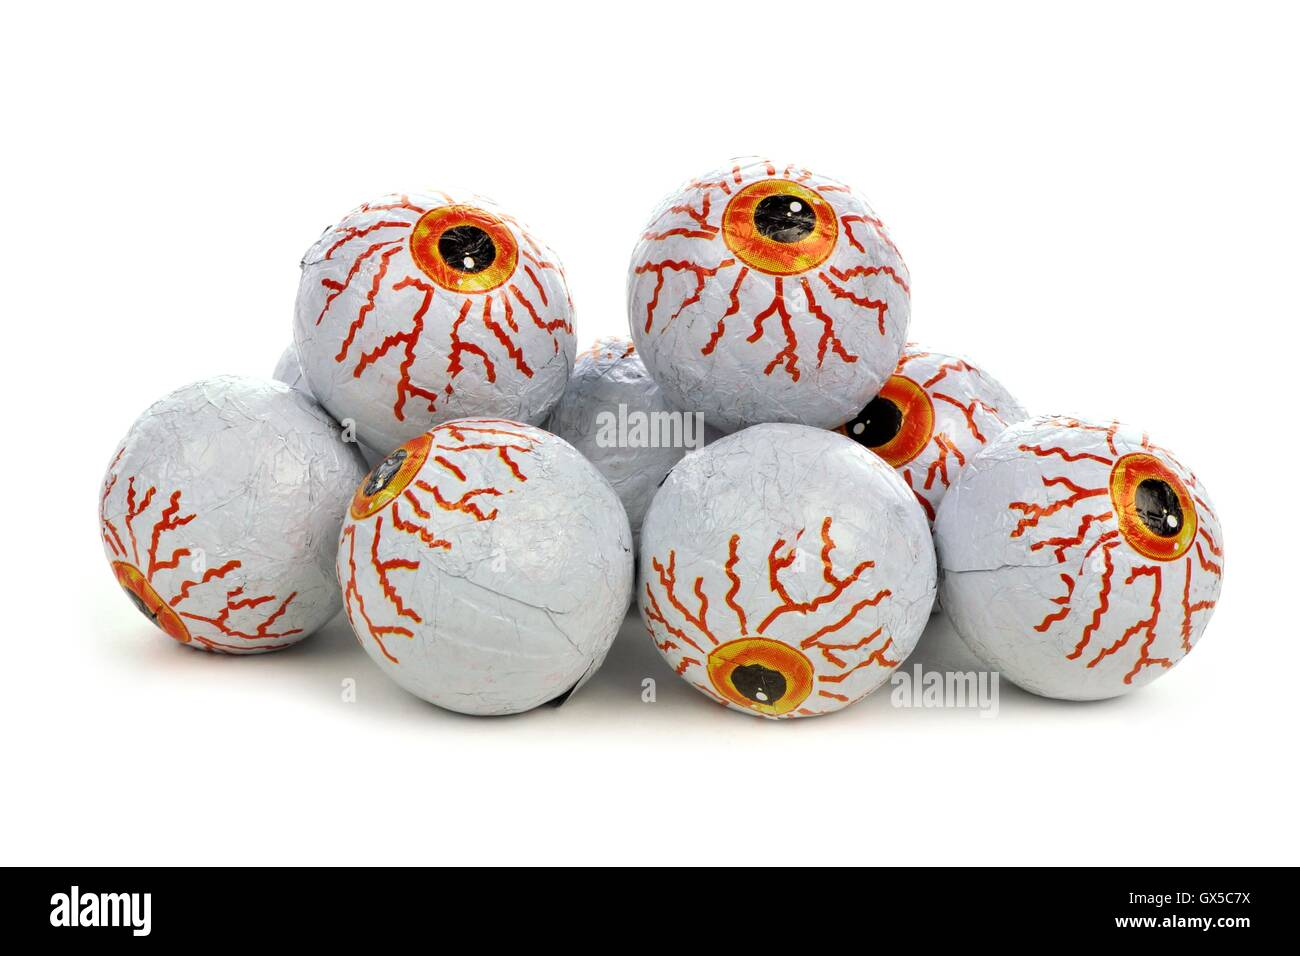 Pile of Halloween candy eyeballs over a white background - Stock Image